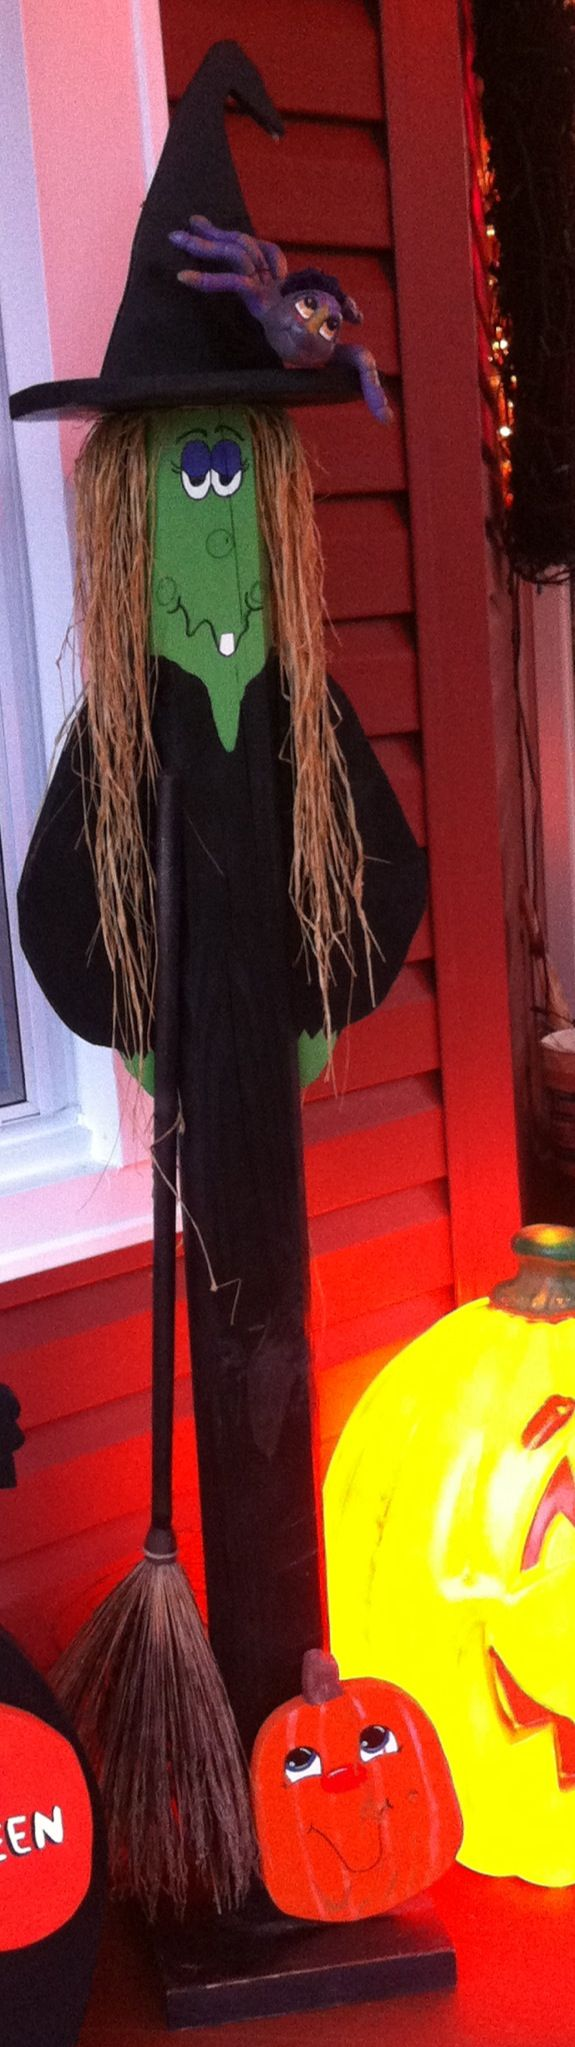 Outdoor halloween decorations 2014 - Witch Made From Landscape Timber And Painted For Halloween